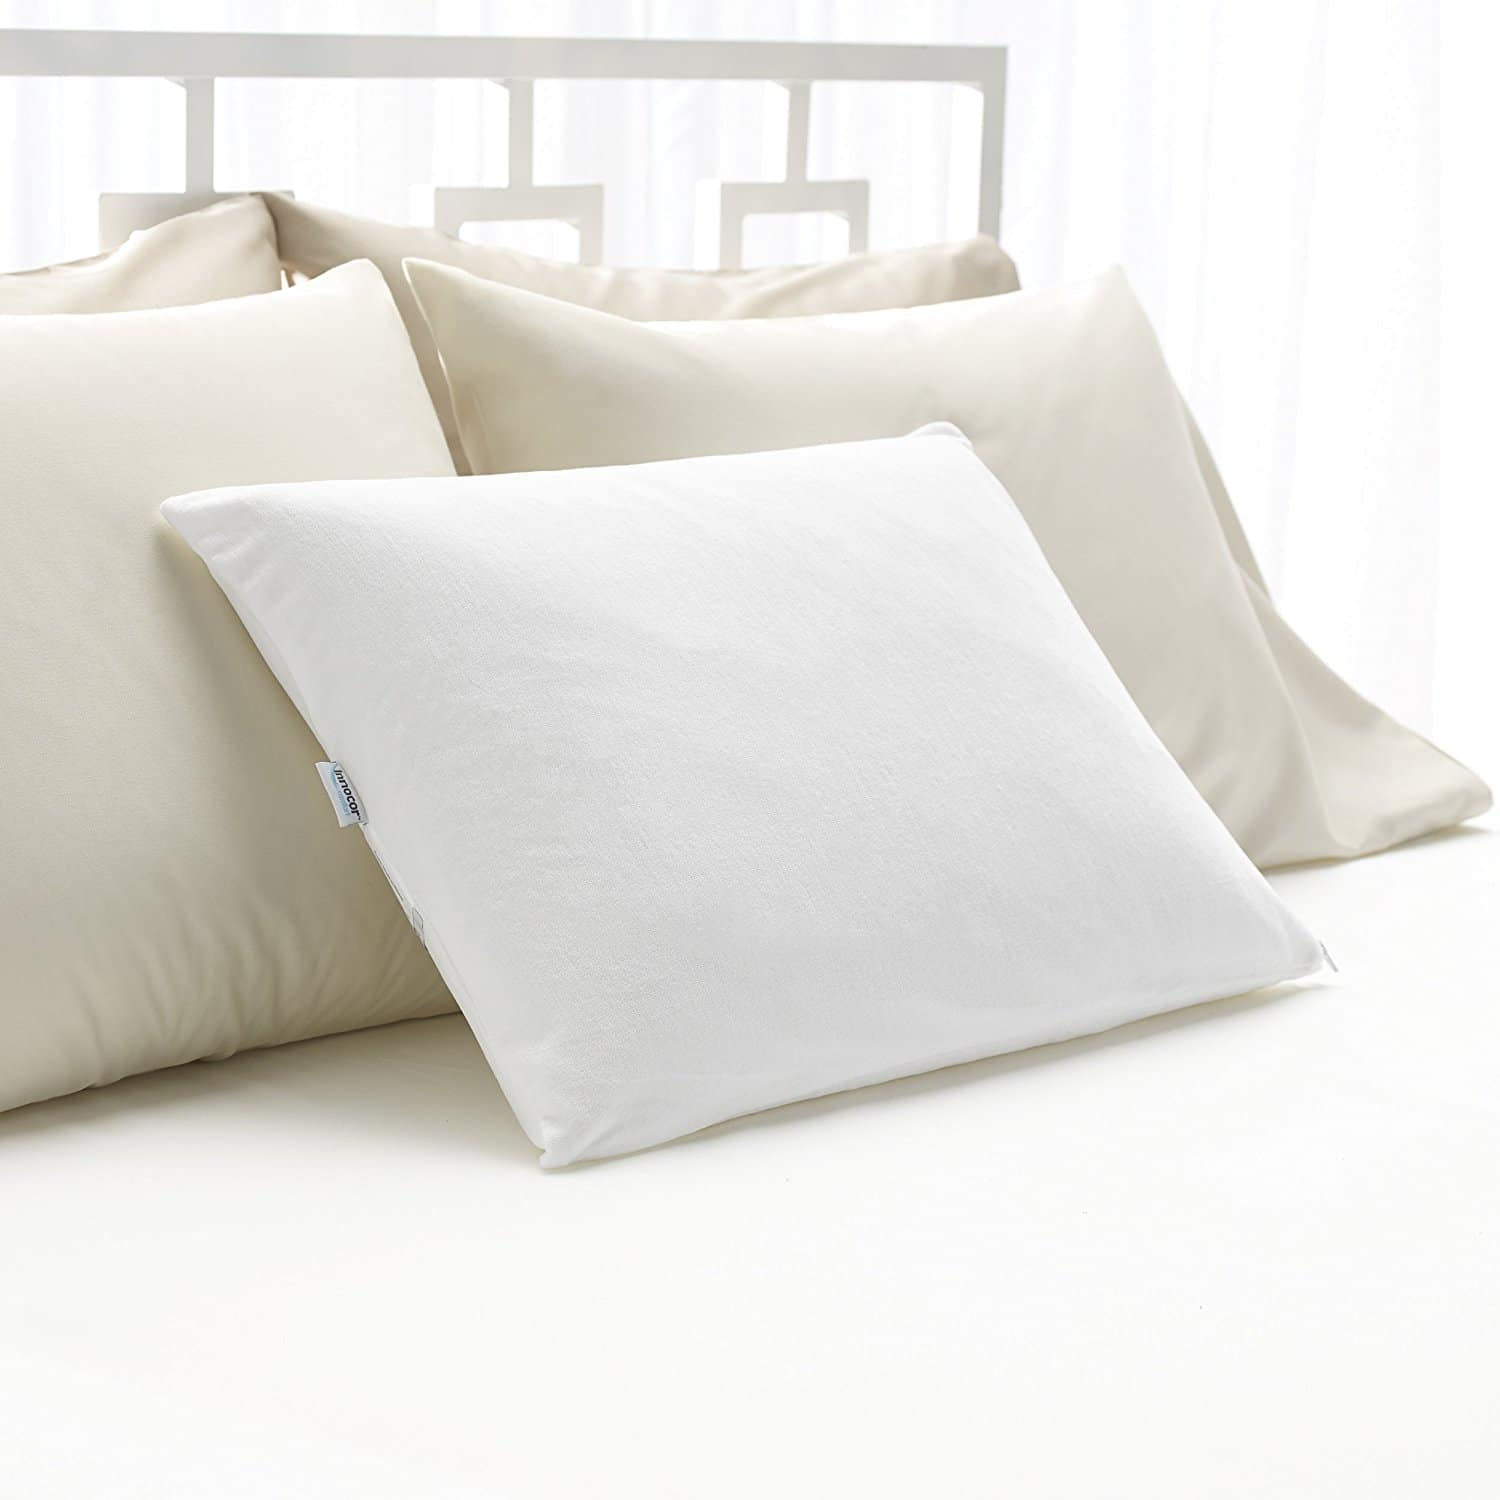 Best Stomach Sleeper Pillow For Stomach Sleepers